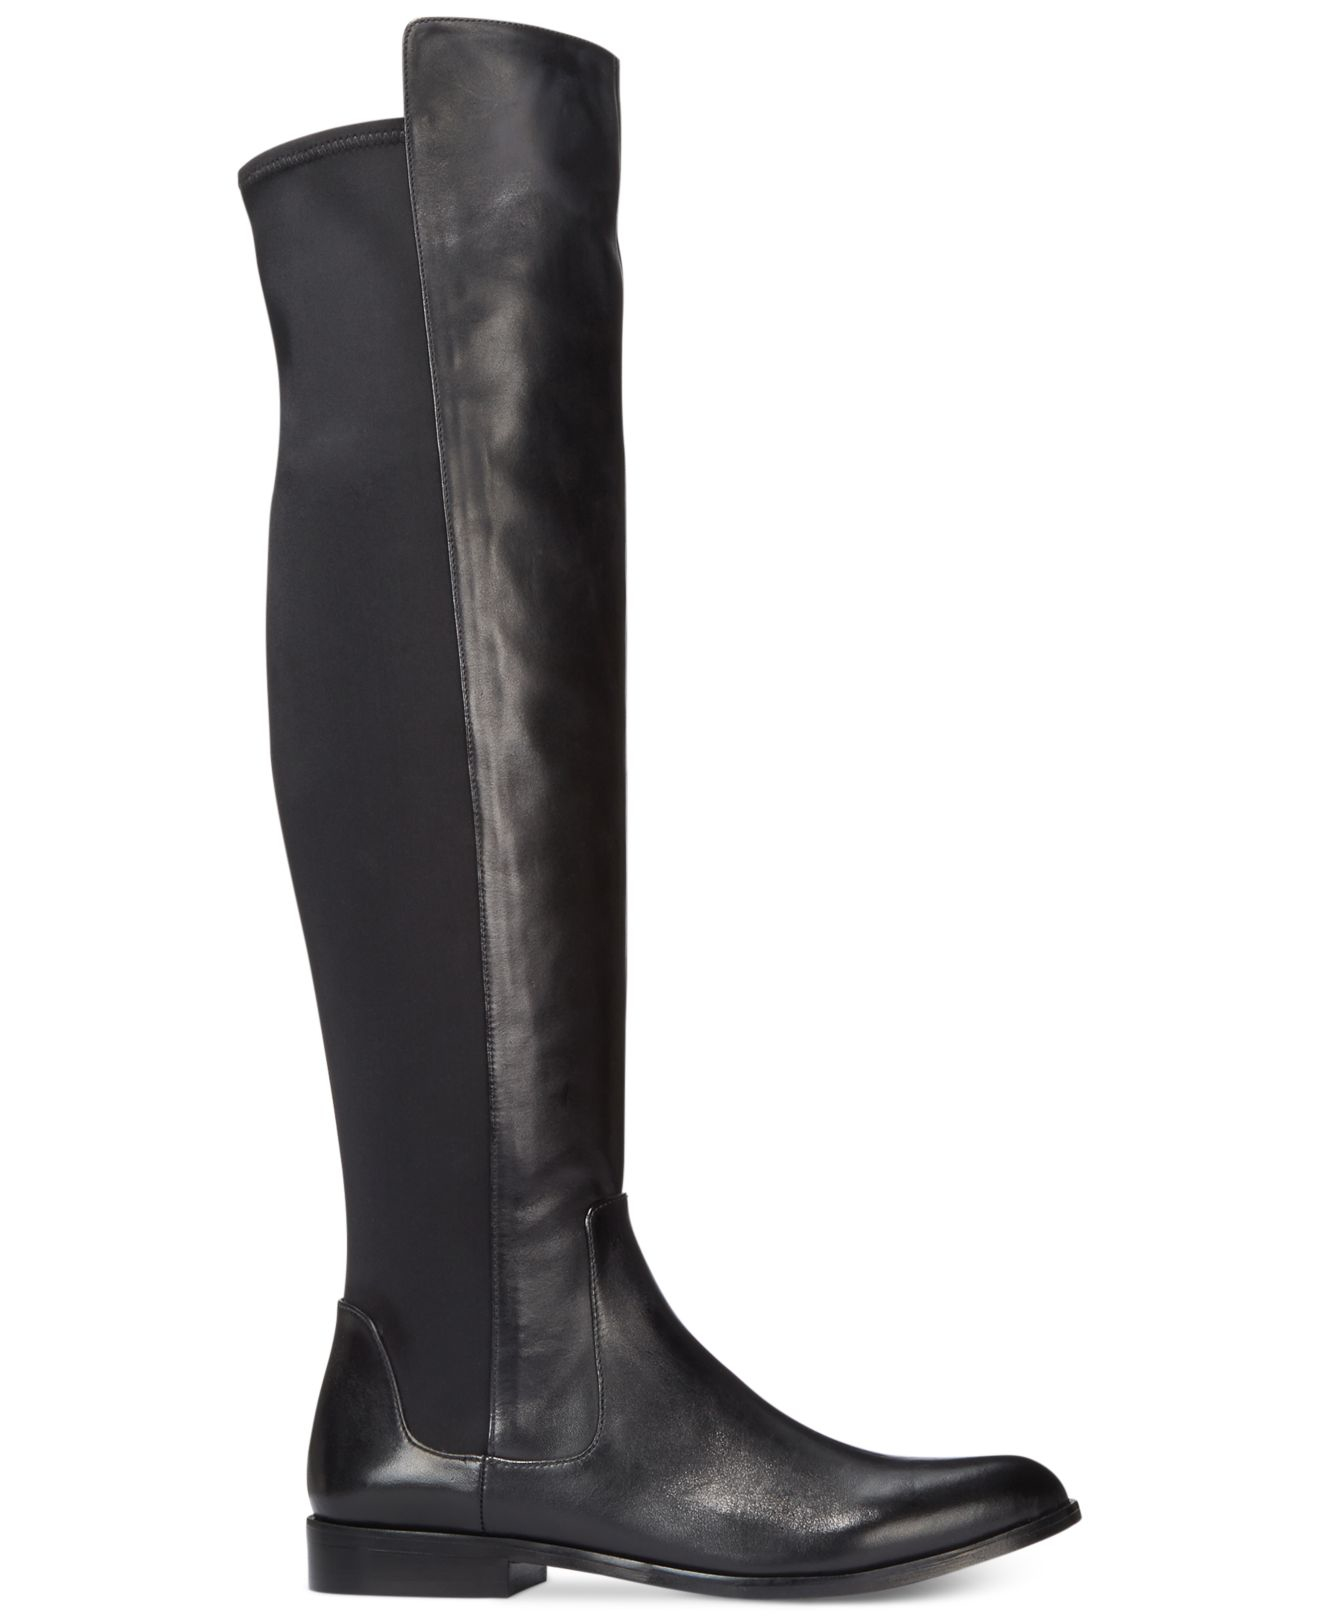 03bbec421c8 Clarks Black Somerset Women's Bizzy Girl Over-the-knee Boots